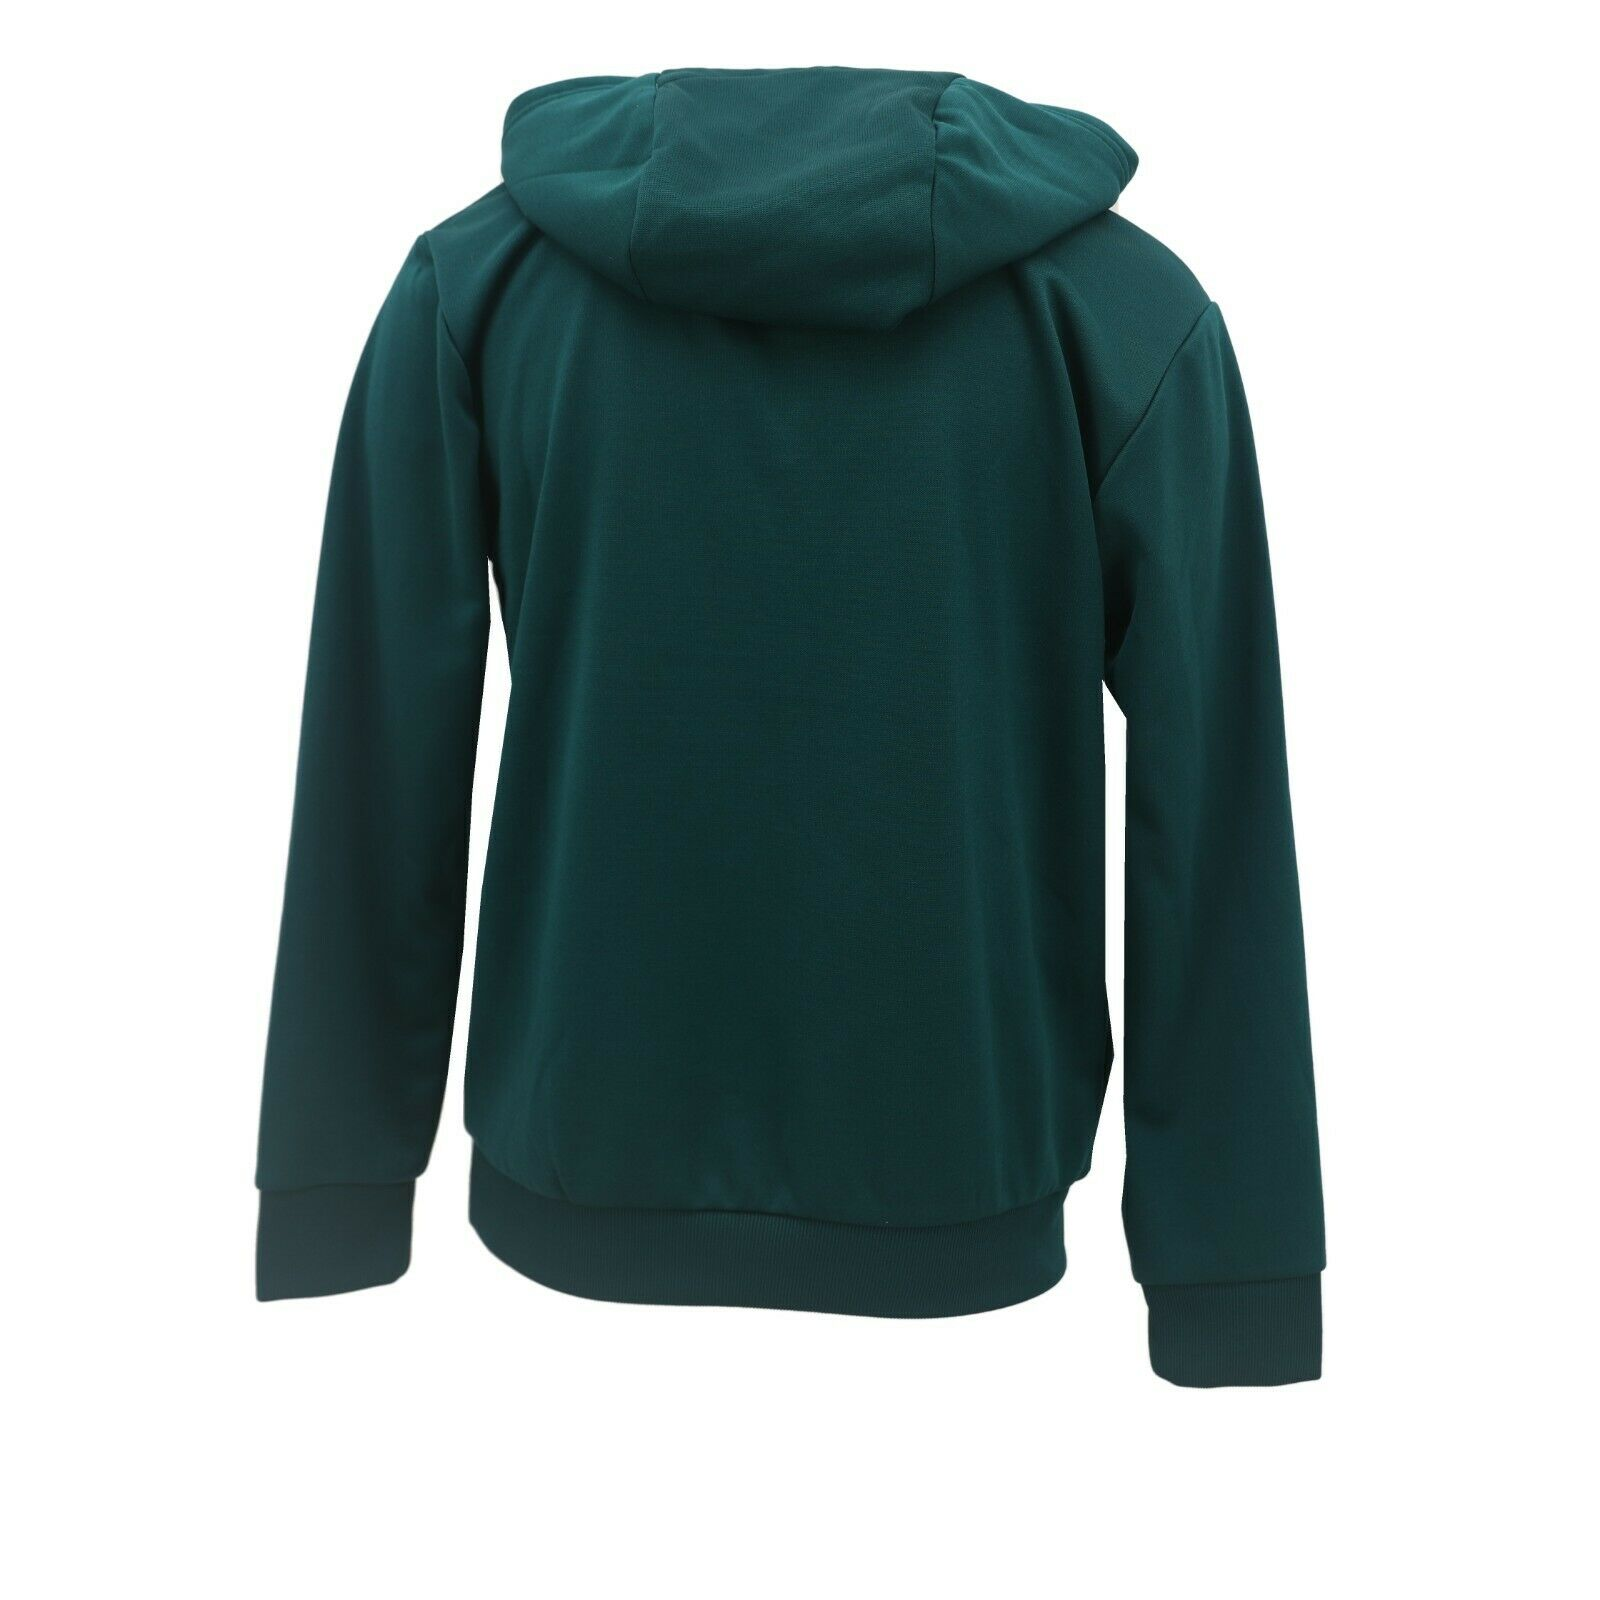 low priced c3a59 e0367 Details about Philadelphia Eagles Official NFL Apparel Kids Youth Size  Hooded Sweatshirt New